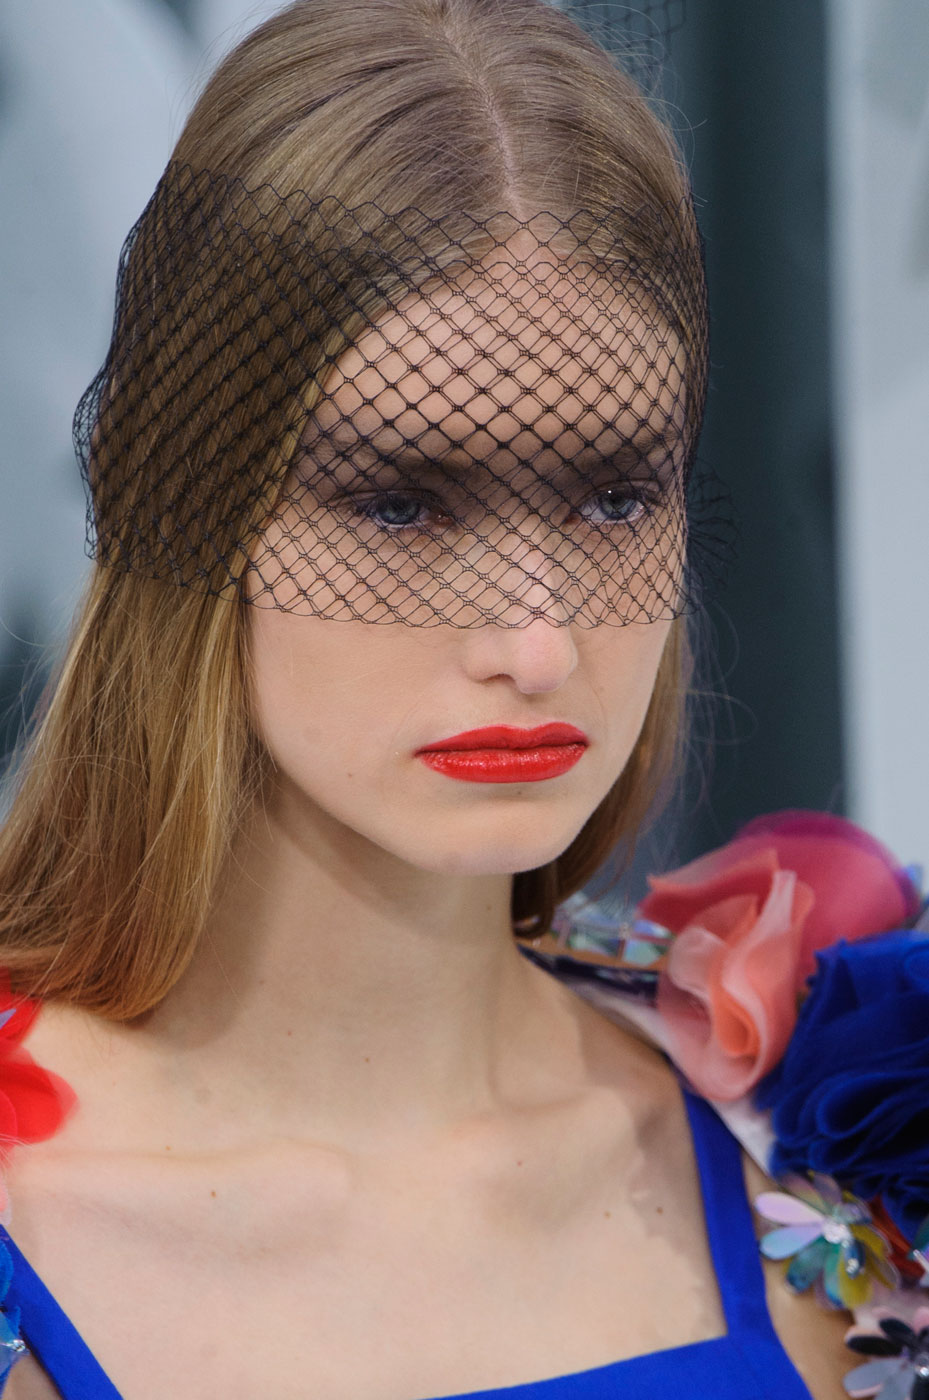 Chanel-fashion-runway-show-close-ups-haute-couture-paris-spring-summer-2015-the-impression-081